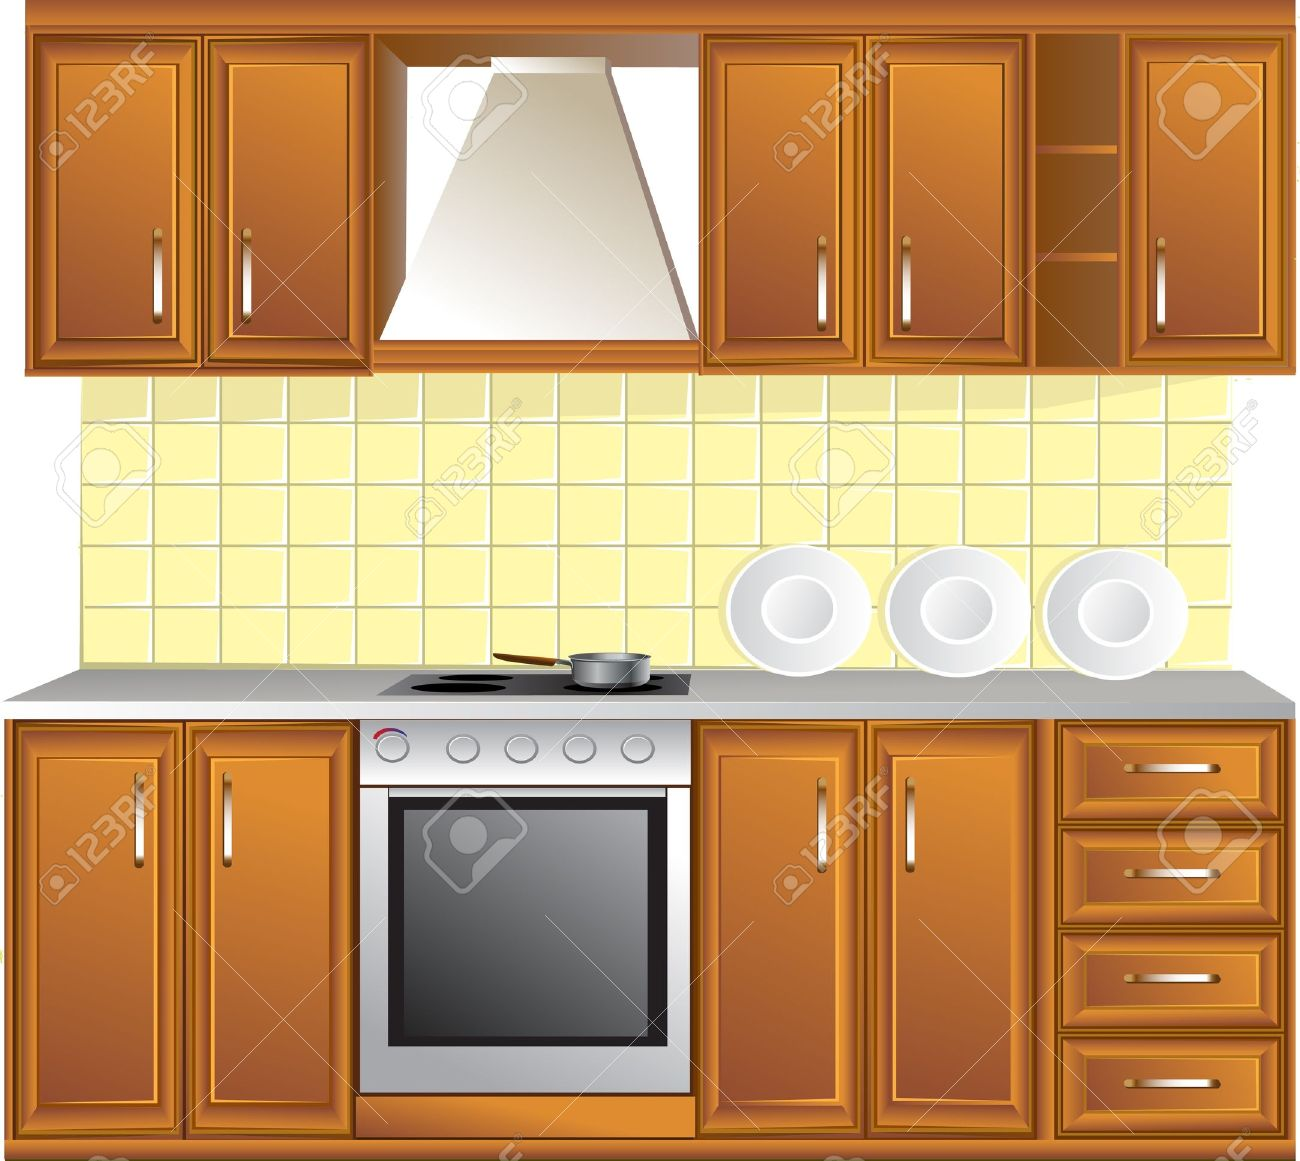 17,405 Kitchen Stove Stock Vector Illustration And Royalty Free.